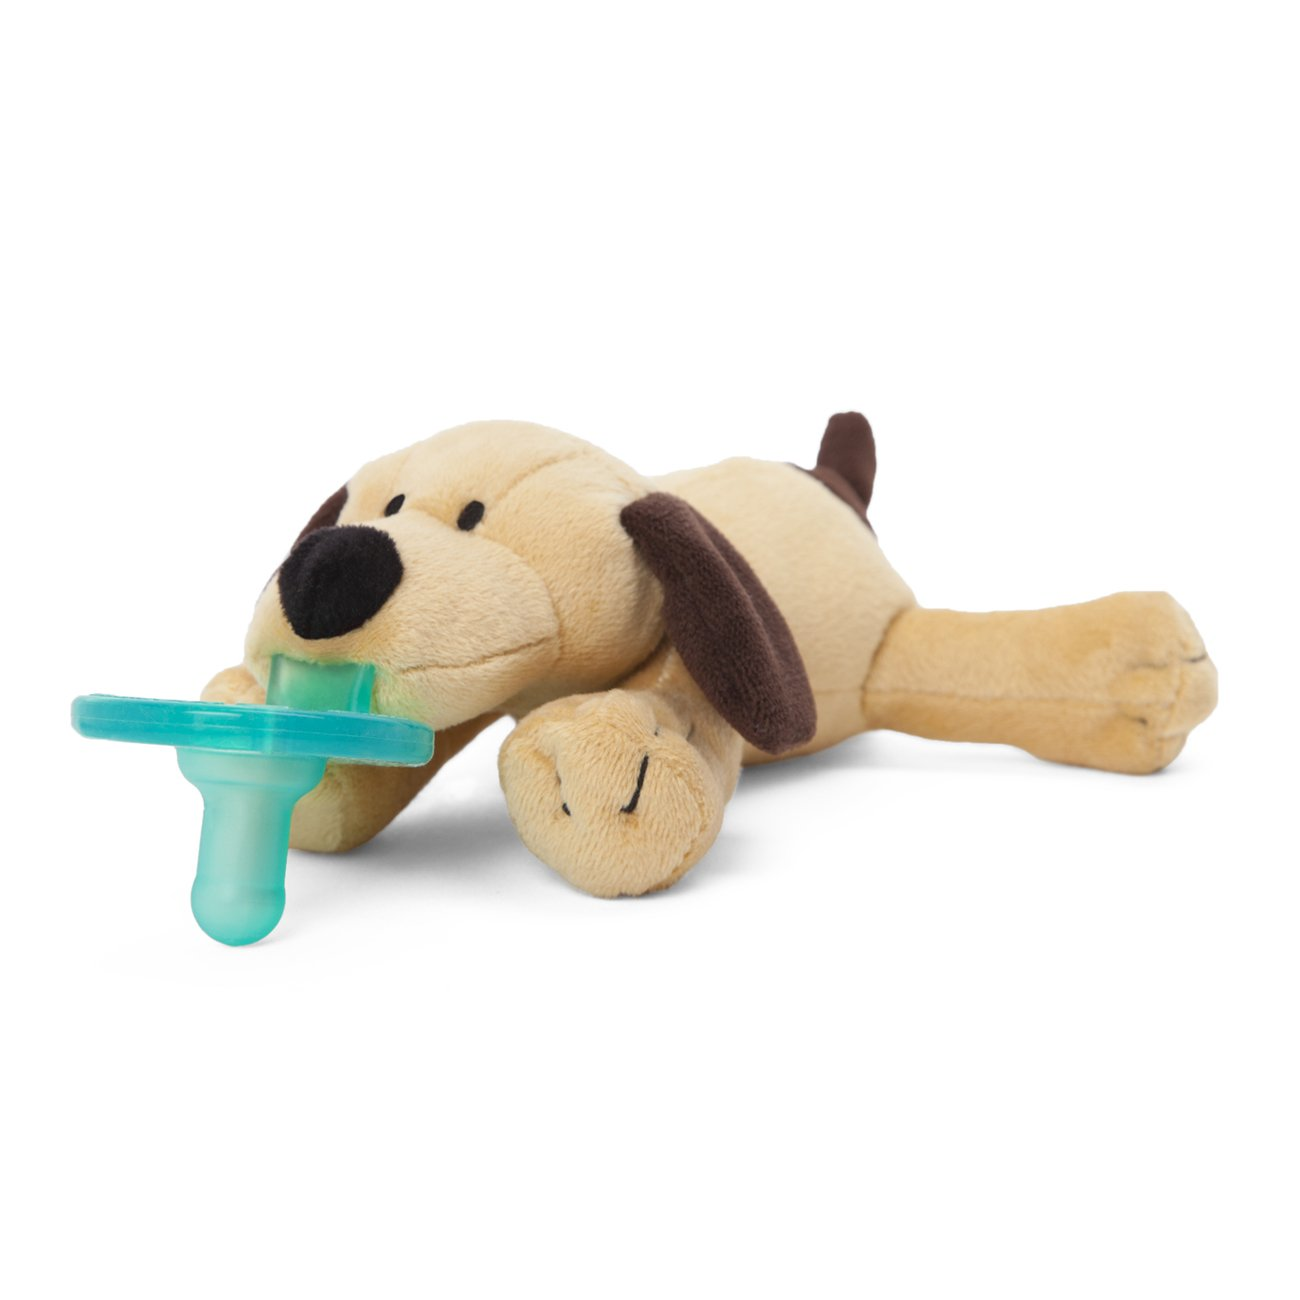 New Baby Pacifier with Stuffed Animal